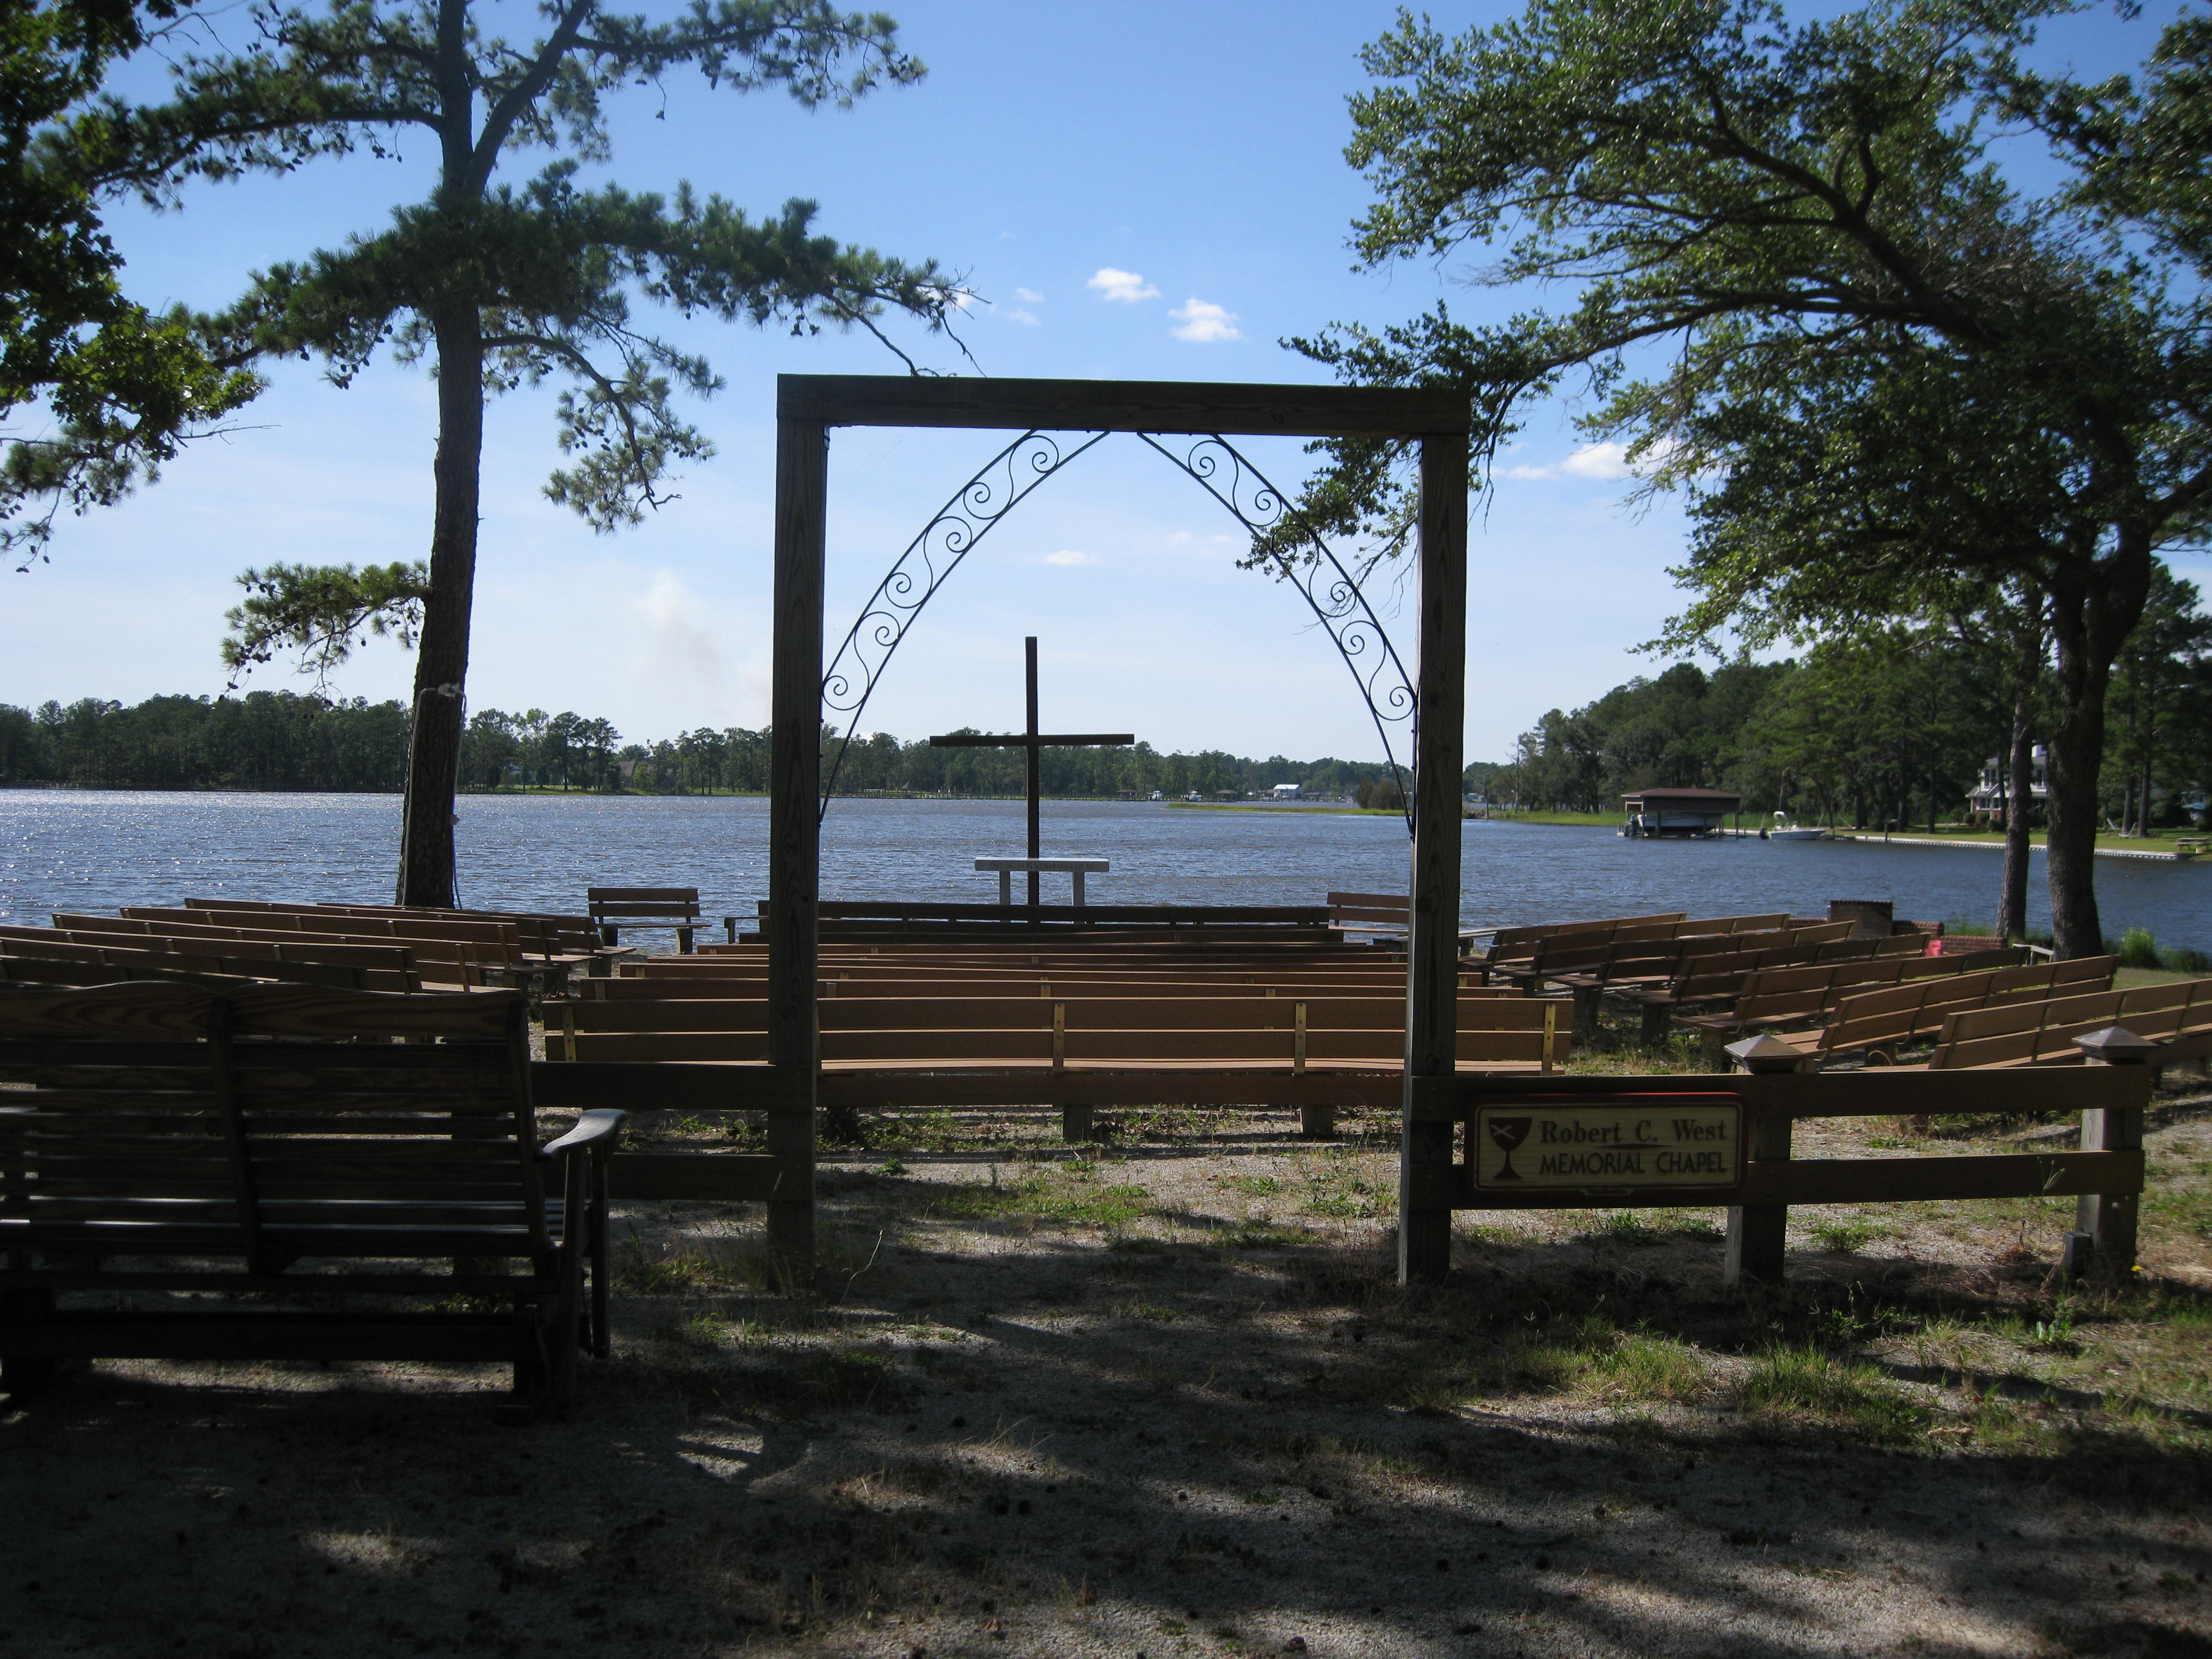 camp creek christian dating site (c/o activities/events & christian singles groups) meet and greet events similar to speedy dating scenario, yet with a christian focus camp hill.